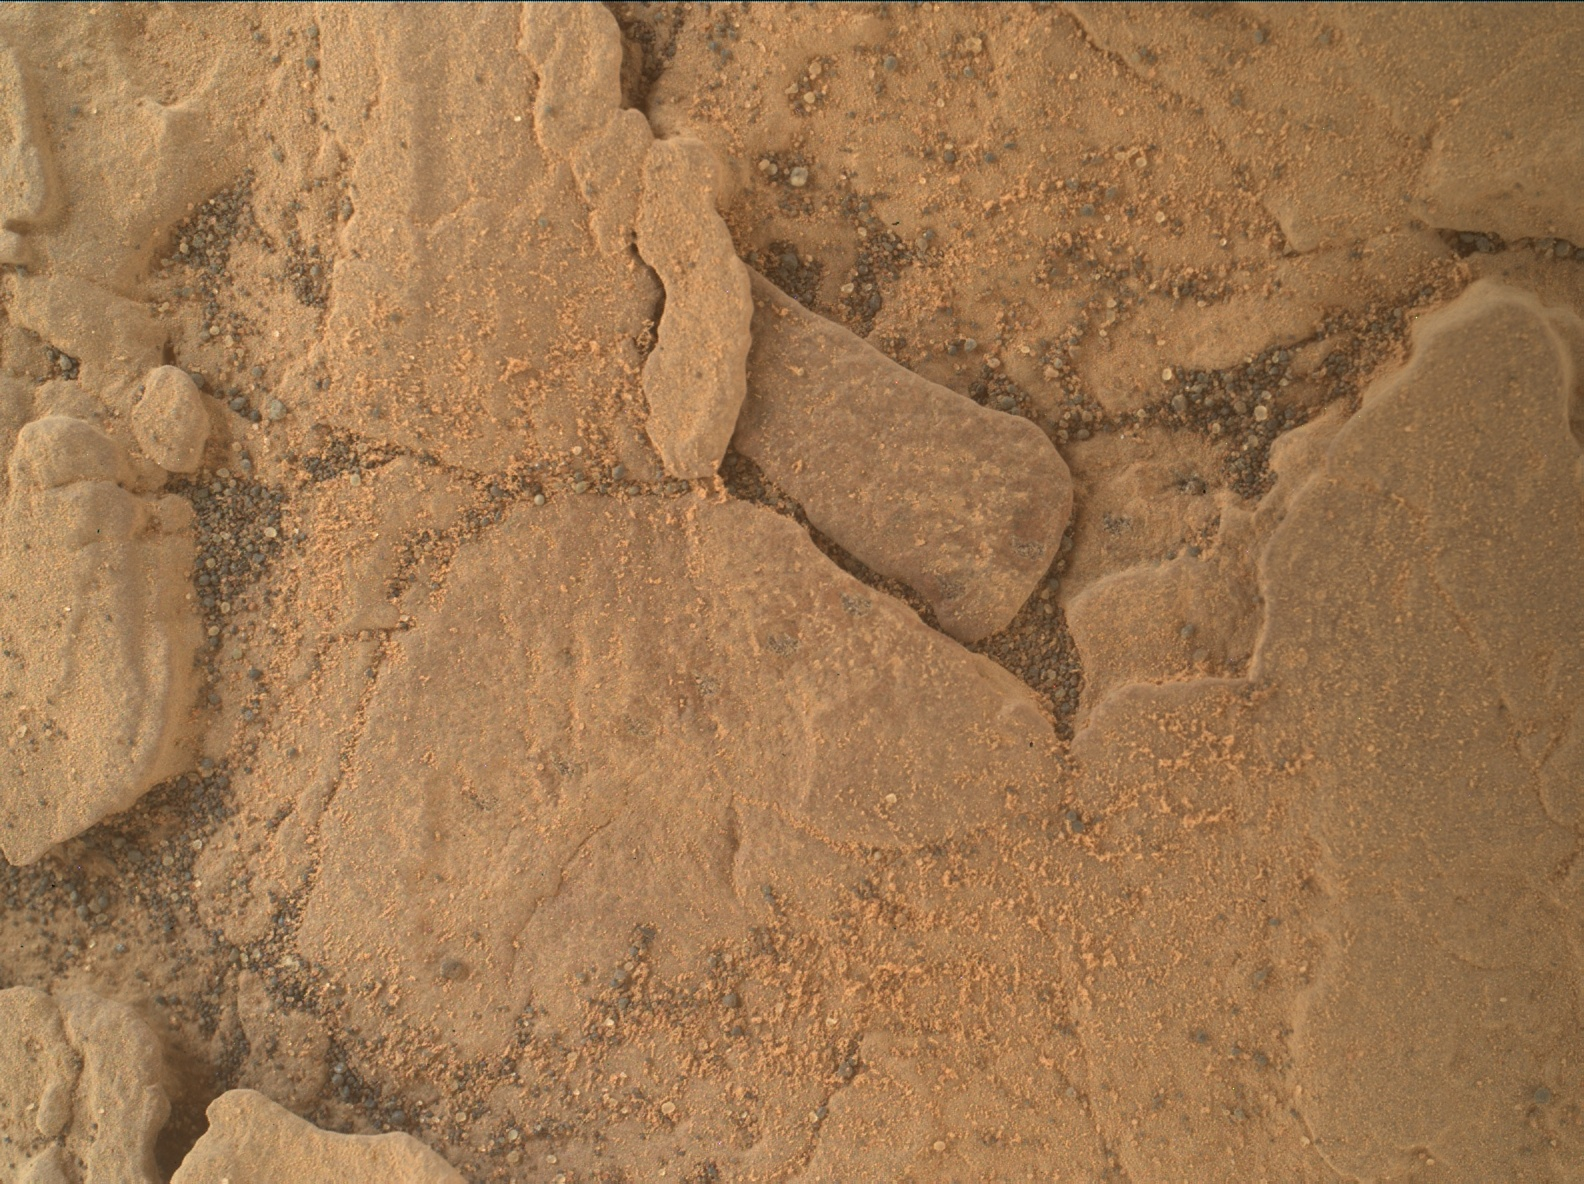 Nasa's Mars rover Curiosity acquired this image using its Mars Hand Lens Imager (MAHLI) on Sol 2461